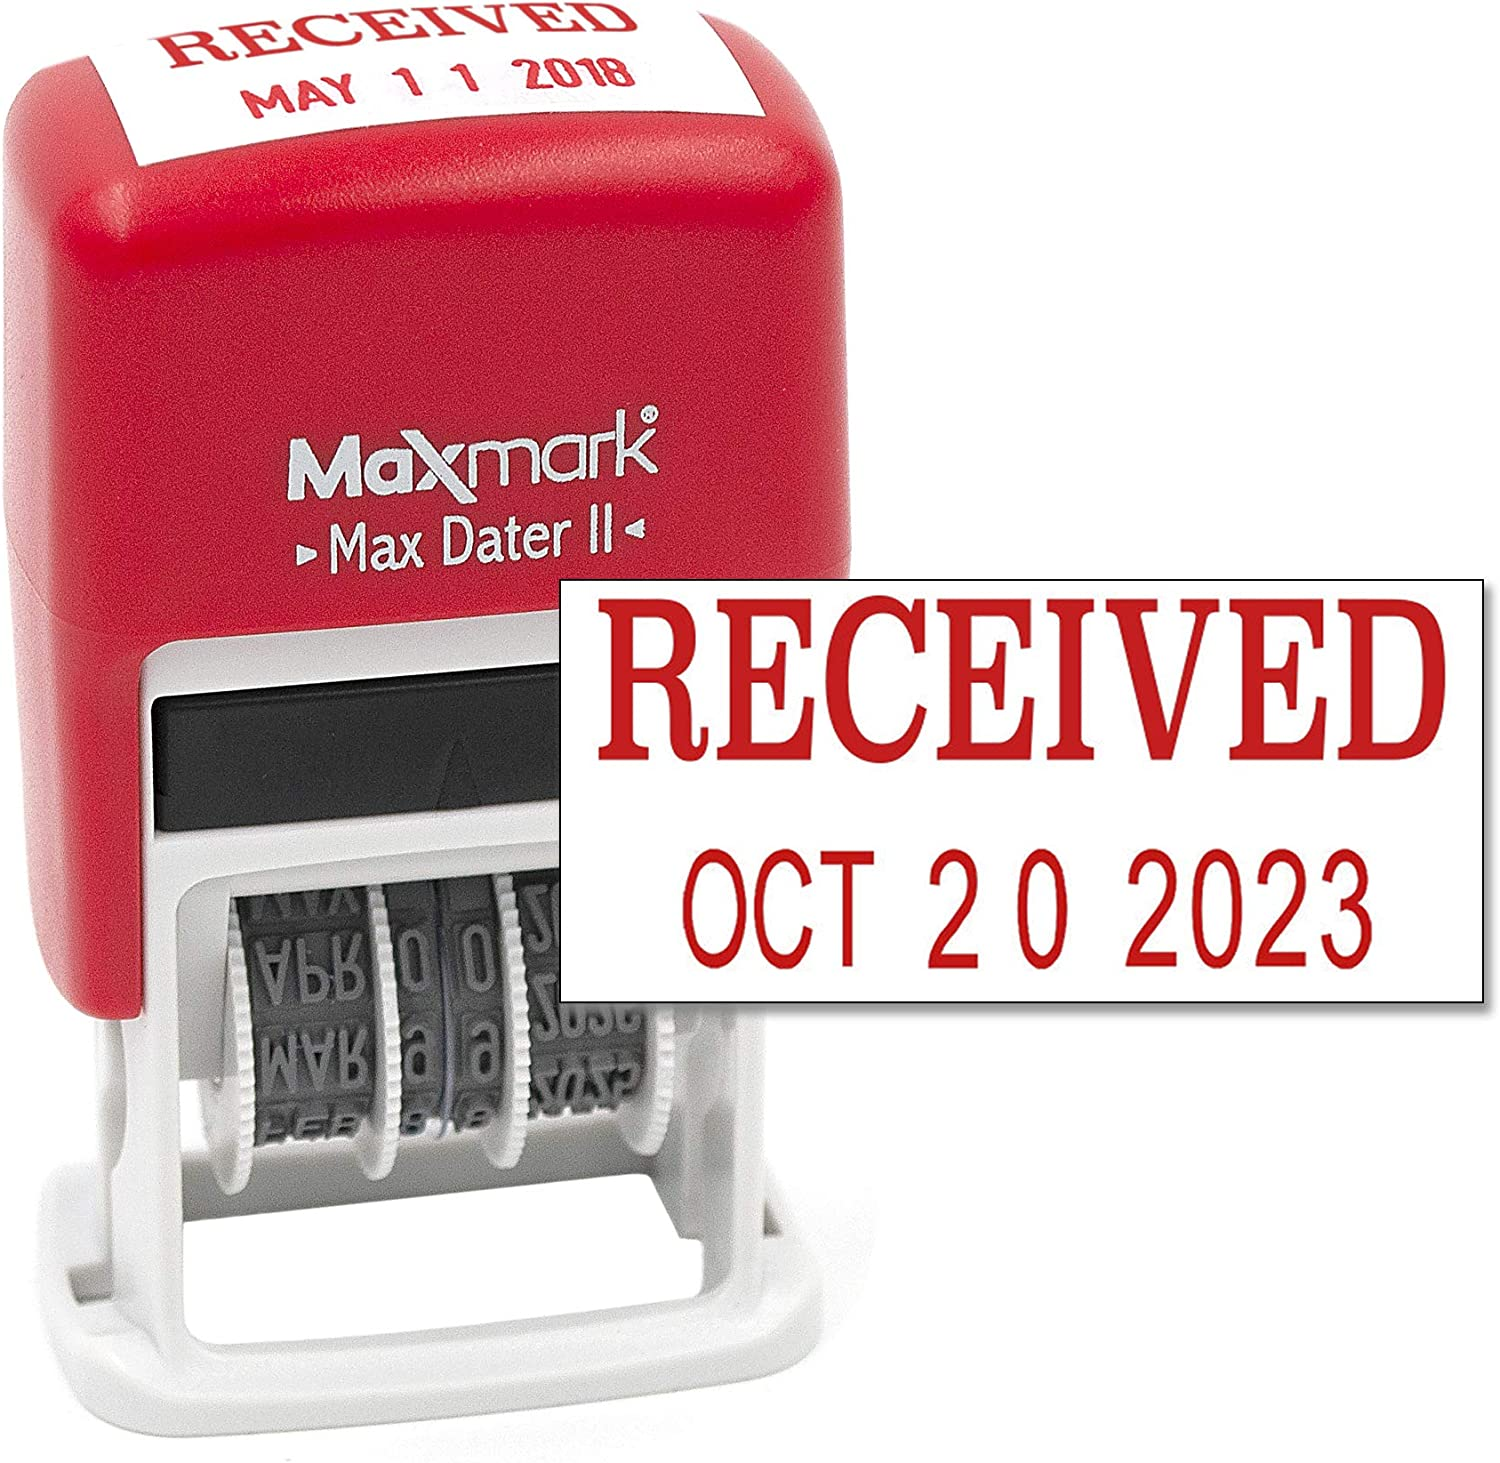 MaxMark Self-Inking Rubber Date Office Stamp with Received Phrase & Date - RED Ink (Max Dater II), 12-Year Band